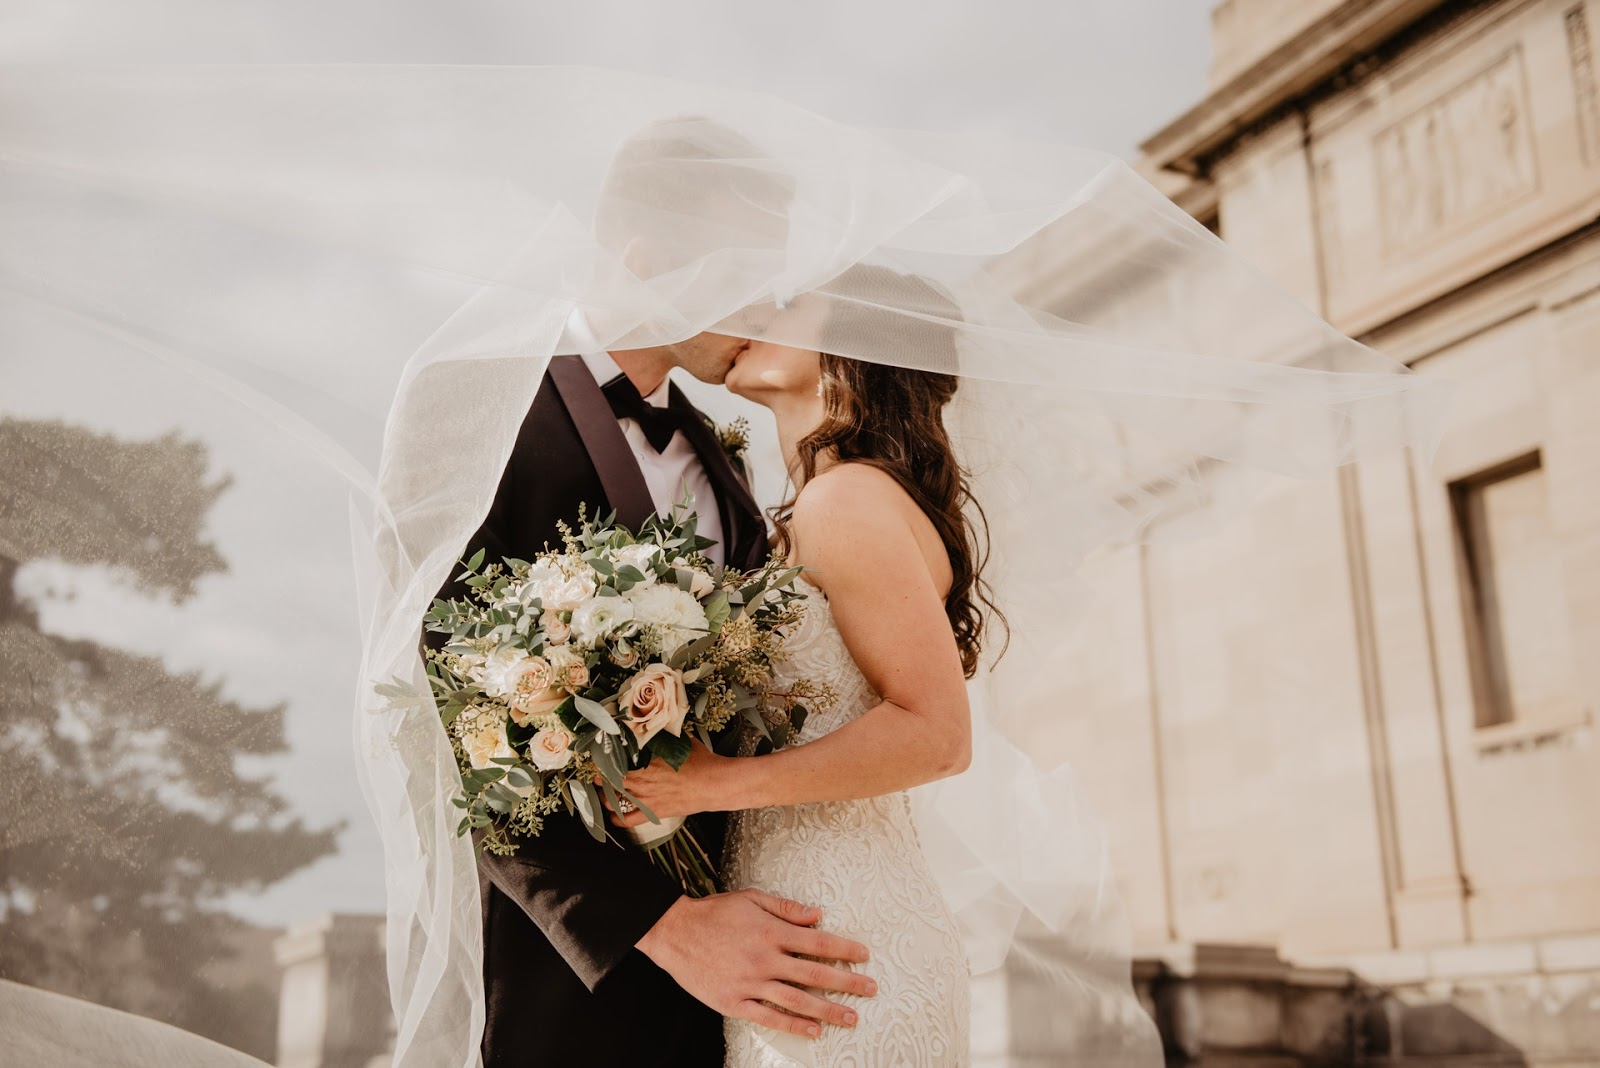 Online Etiquette – 7 Great Gift Ideas For Your First Virtual Wedding